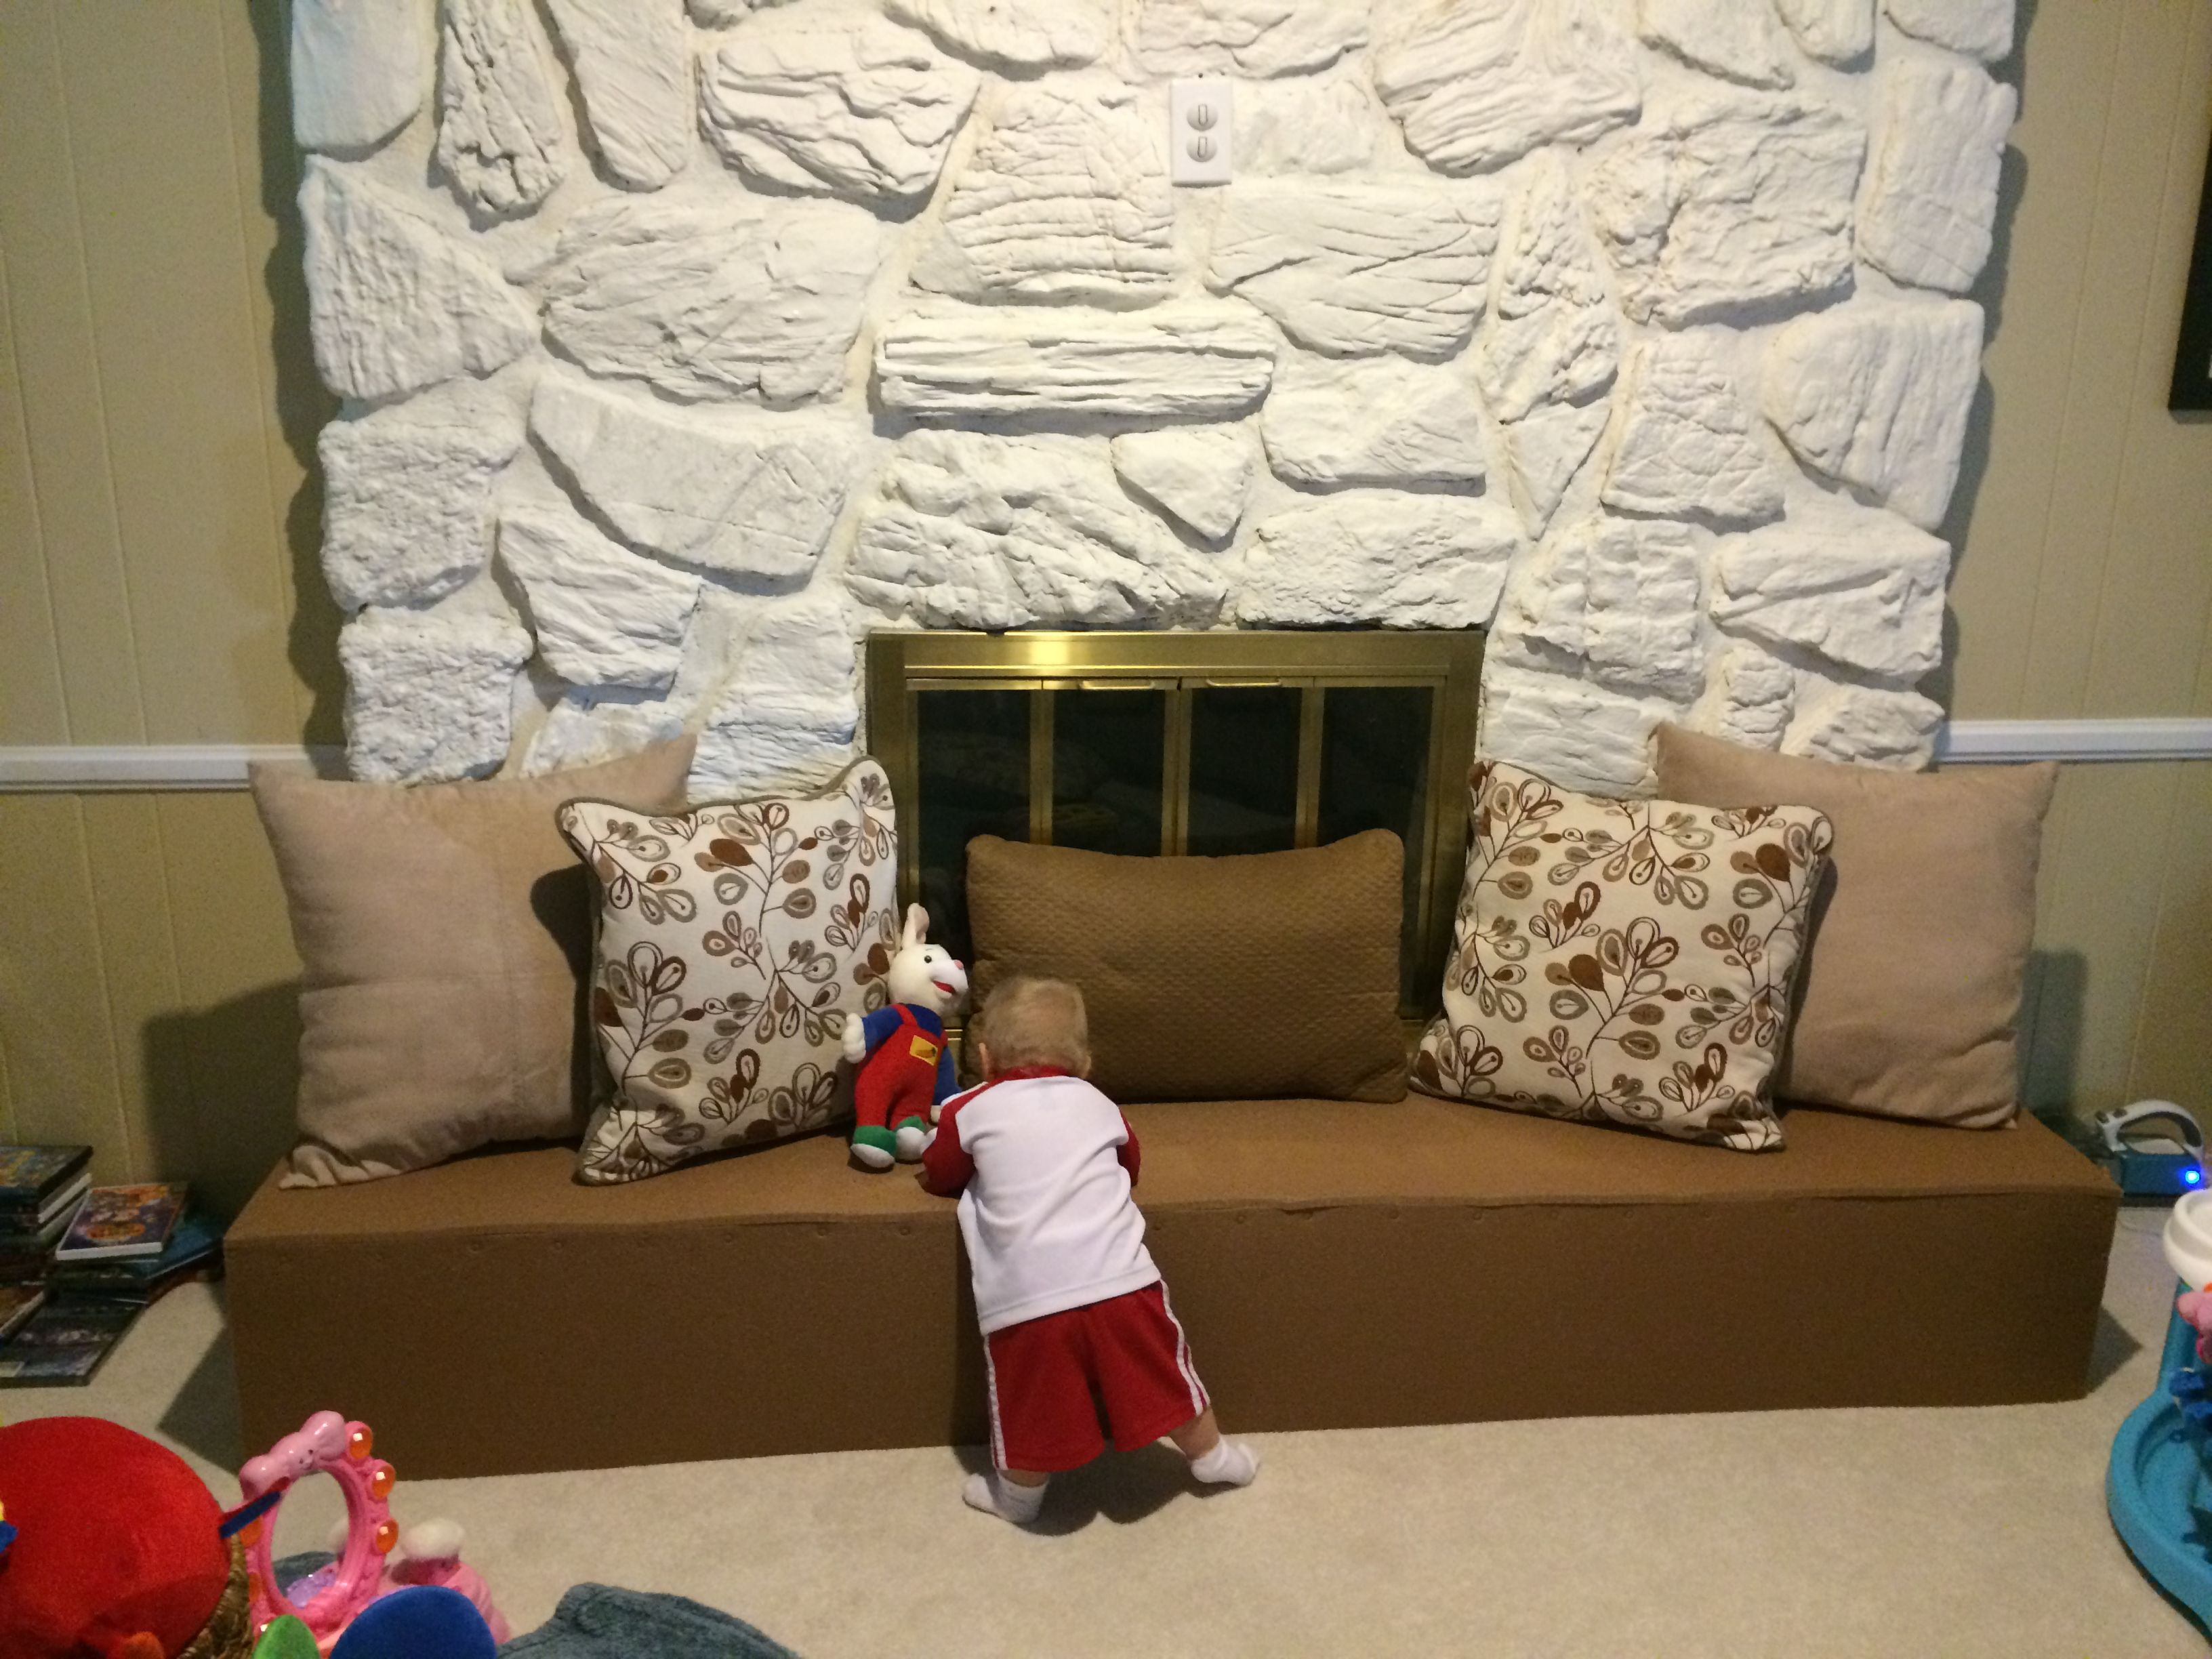 Baby Proof your Fireplace with our Fireplace Hearth Guard Pad-a recent after picture of a fireplace with our Hearth Guard providing the needed protection for your child